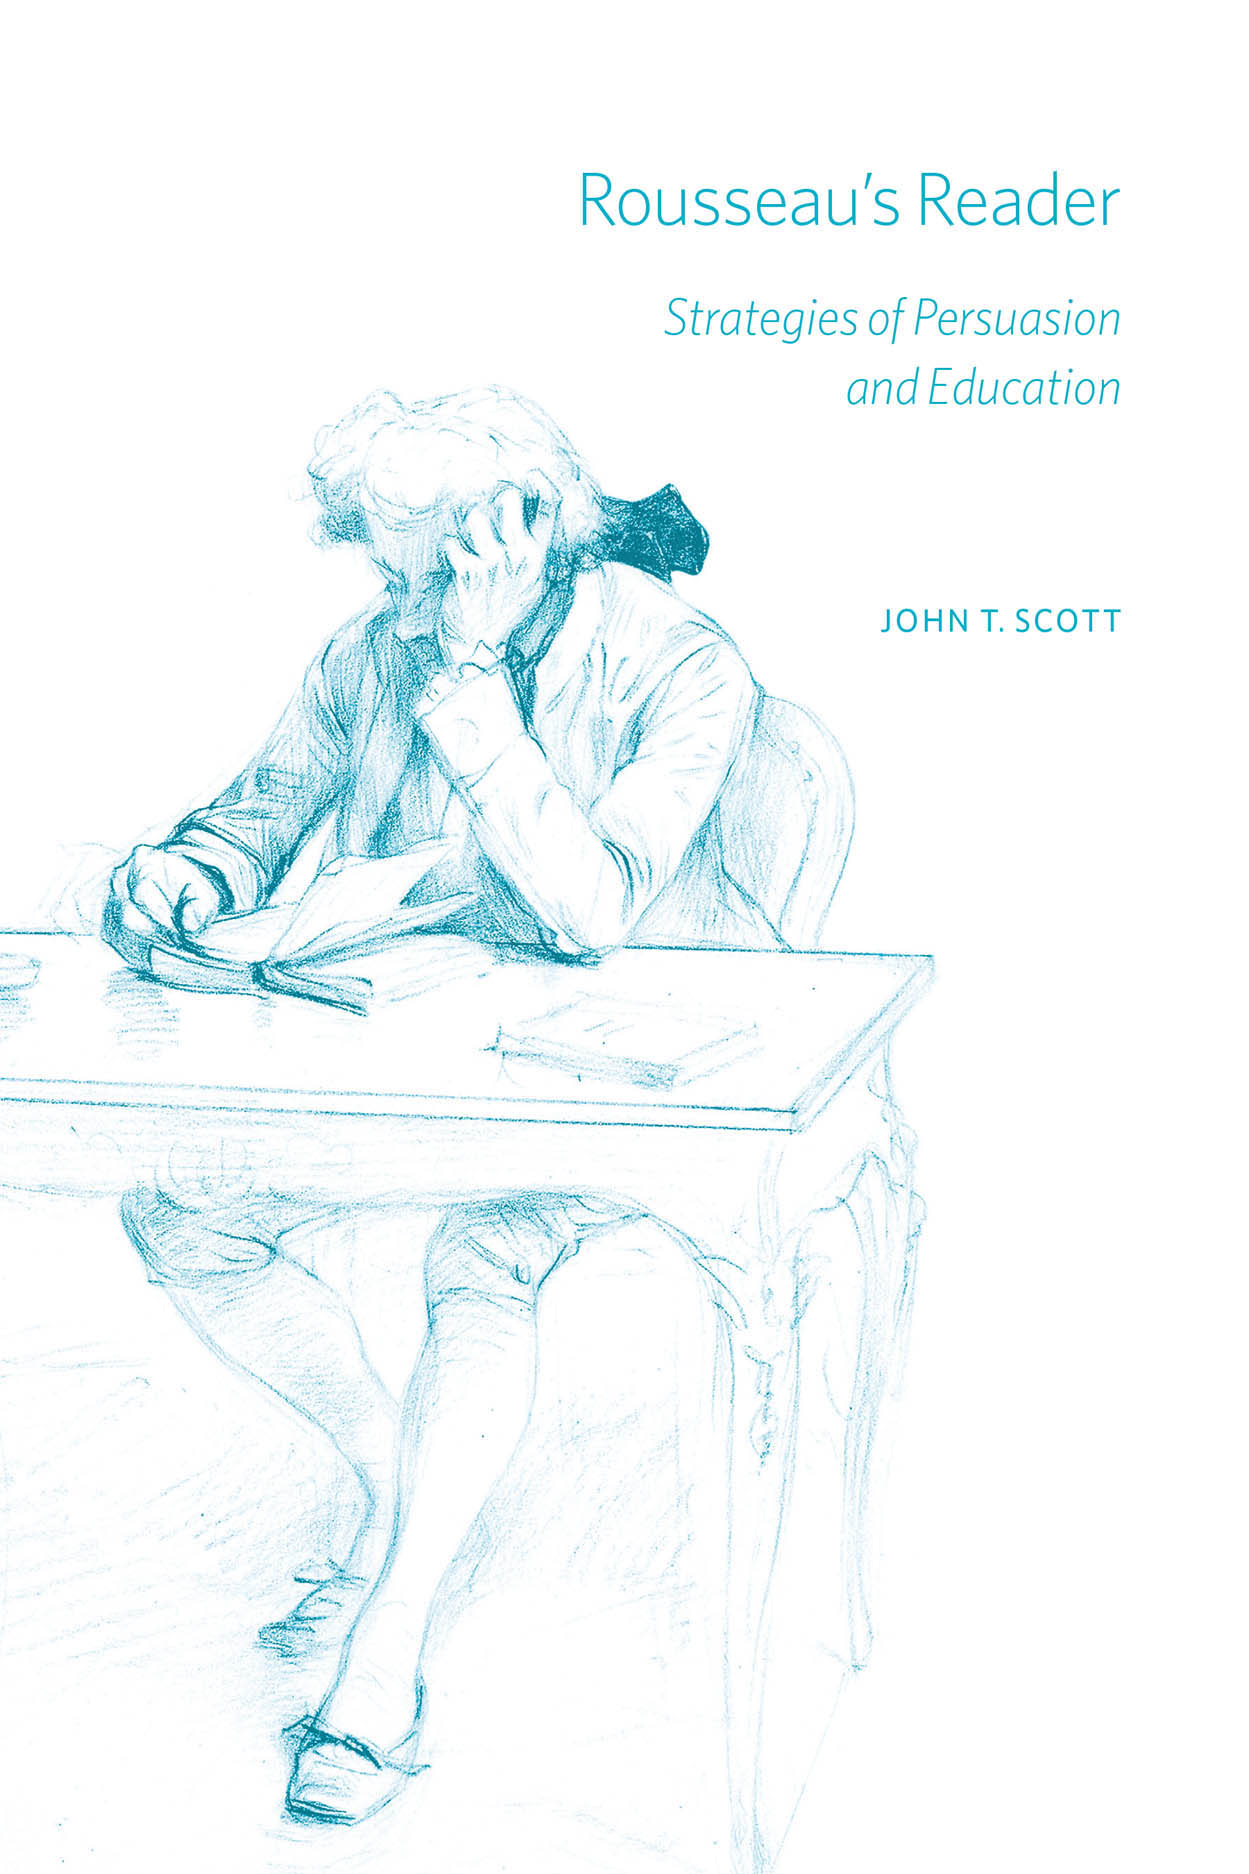 Rousseau's Reader: Strategies of Persuasion and Education